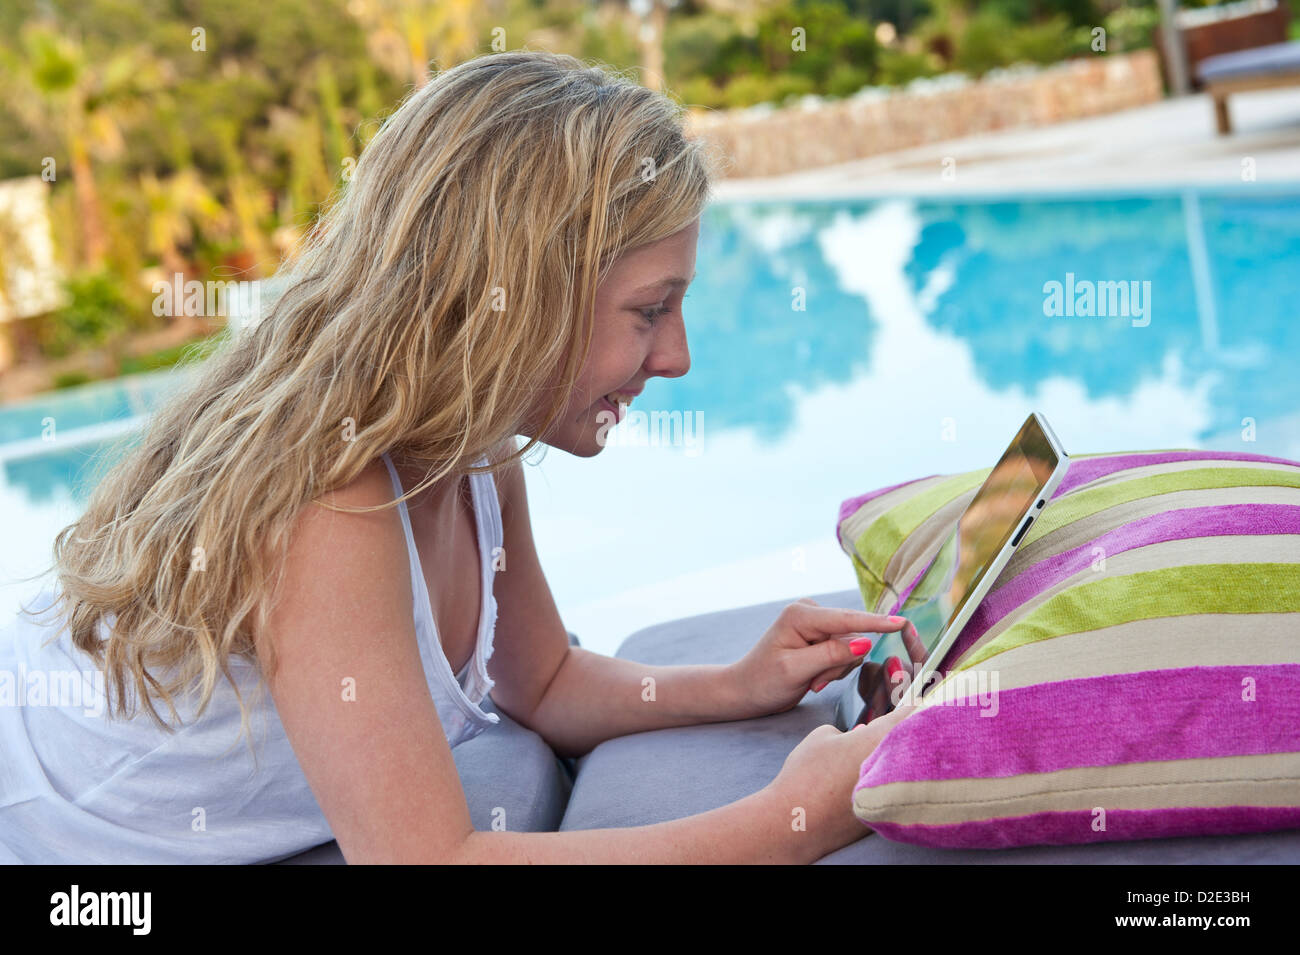 IPAD STREAMING DOWNLOAD iTunes FaceTime 4g abroad Teenage